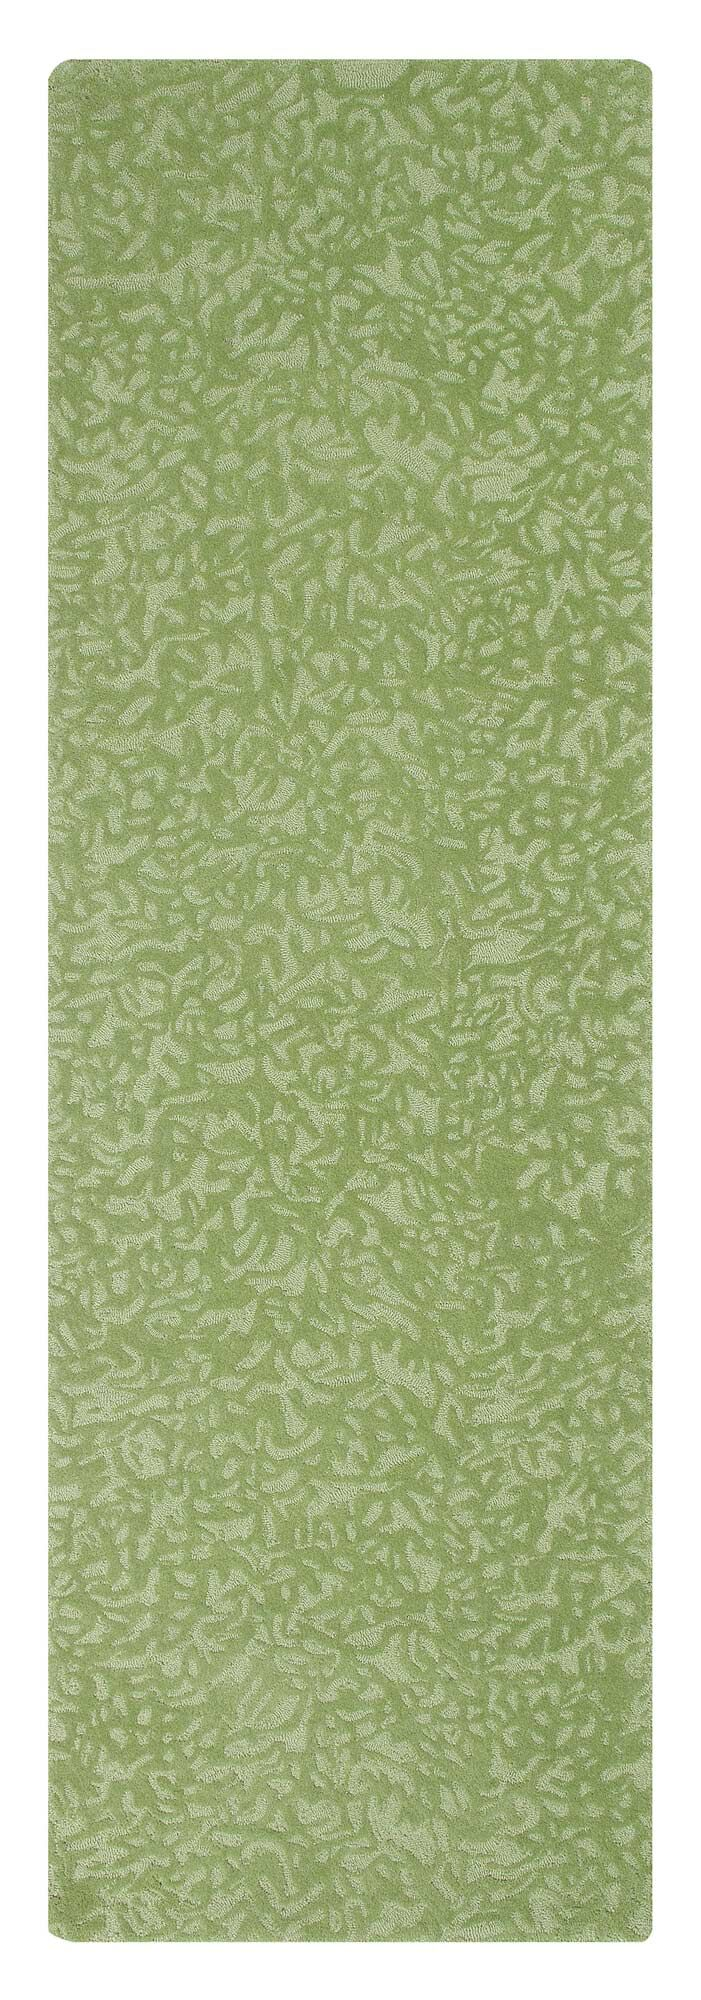 Crackle Hand-Tufted Grass Area Rug Rug Size: Rectangle 5' x 8'